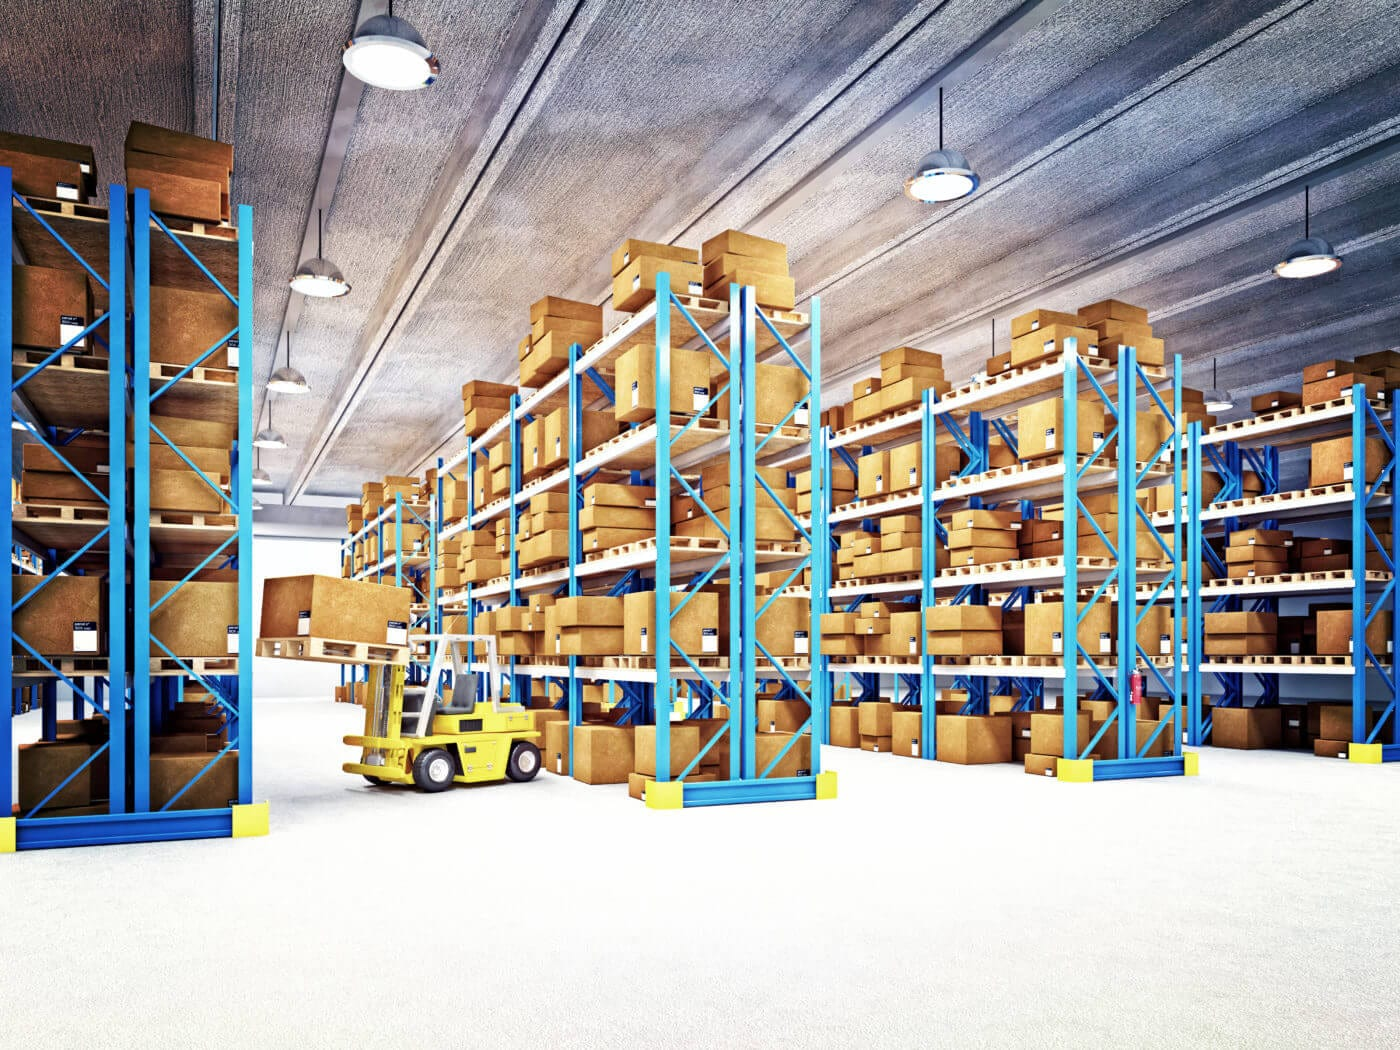 Warehousing and distribution